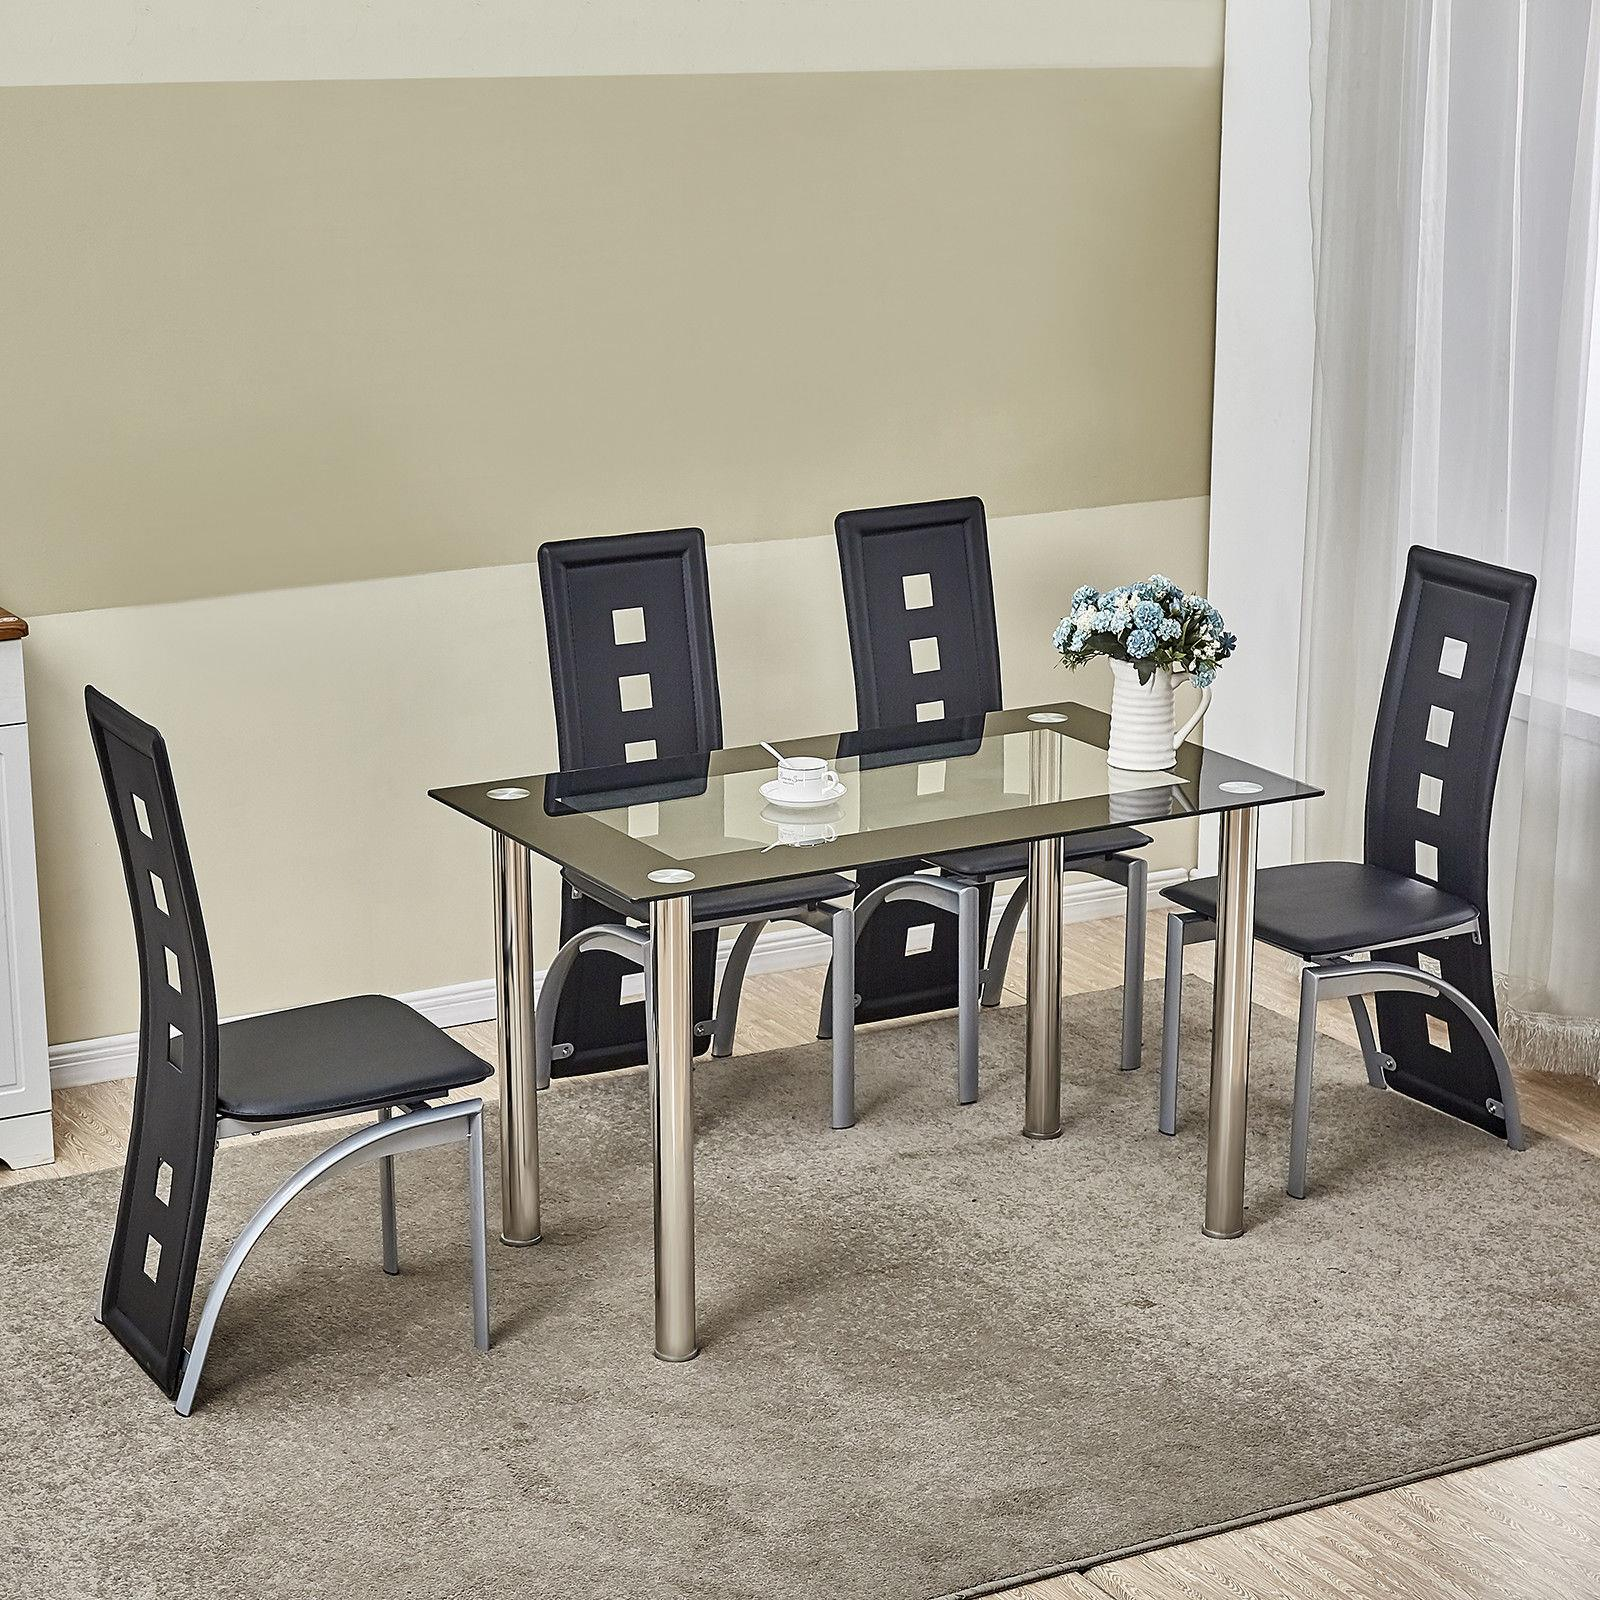 Picture of: 5 Piece Glass Dining Table Set 4 Chairs Room Kitchen Breakfast Furniture 711202363977 Ebay